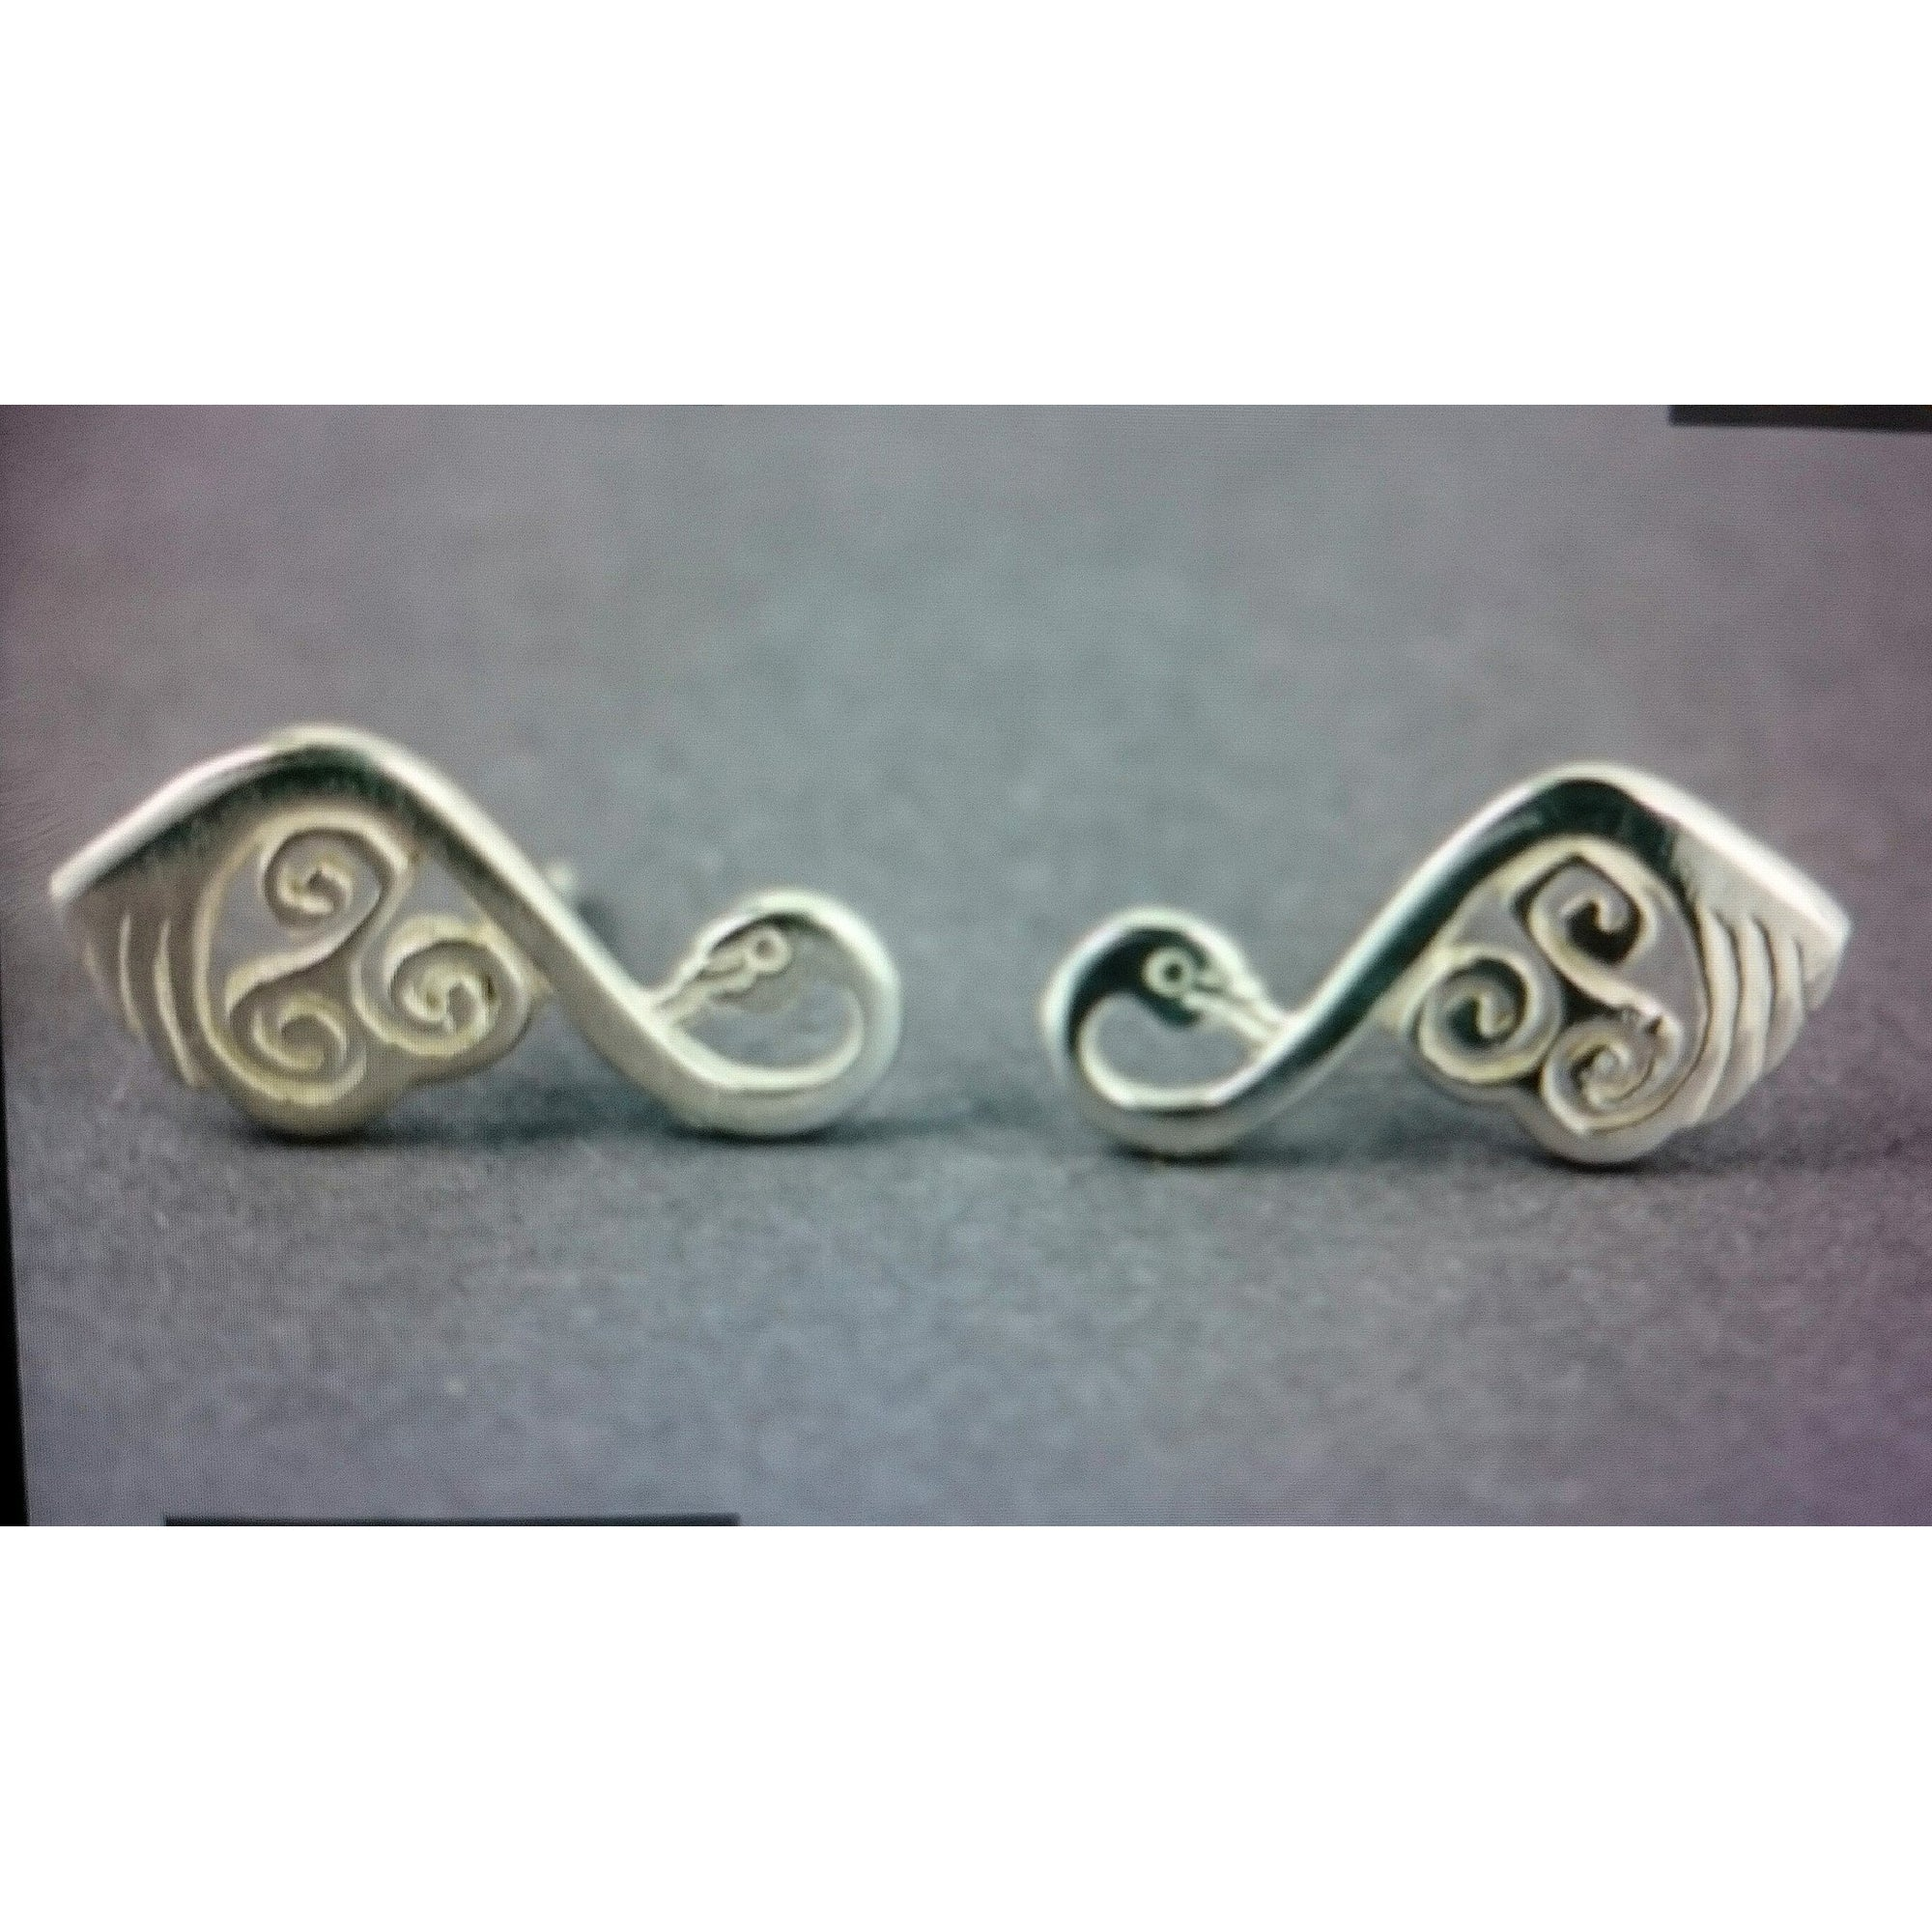 Celtic Swan Stud Earrings, Sterling Silver Jewelry, part of a set with a special pendant, a perfect gift for a special one!